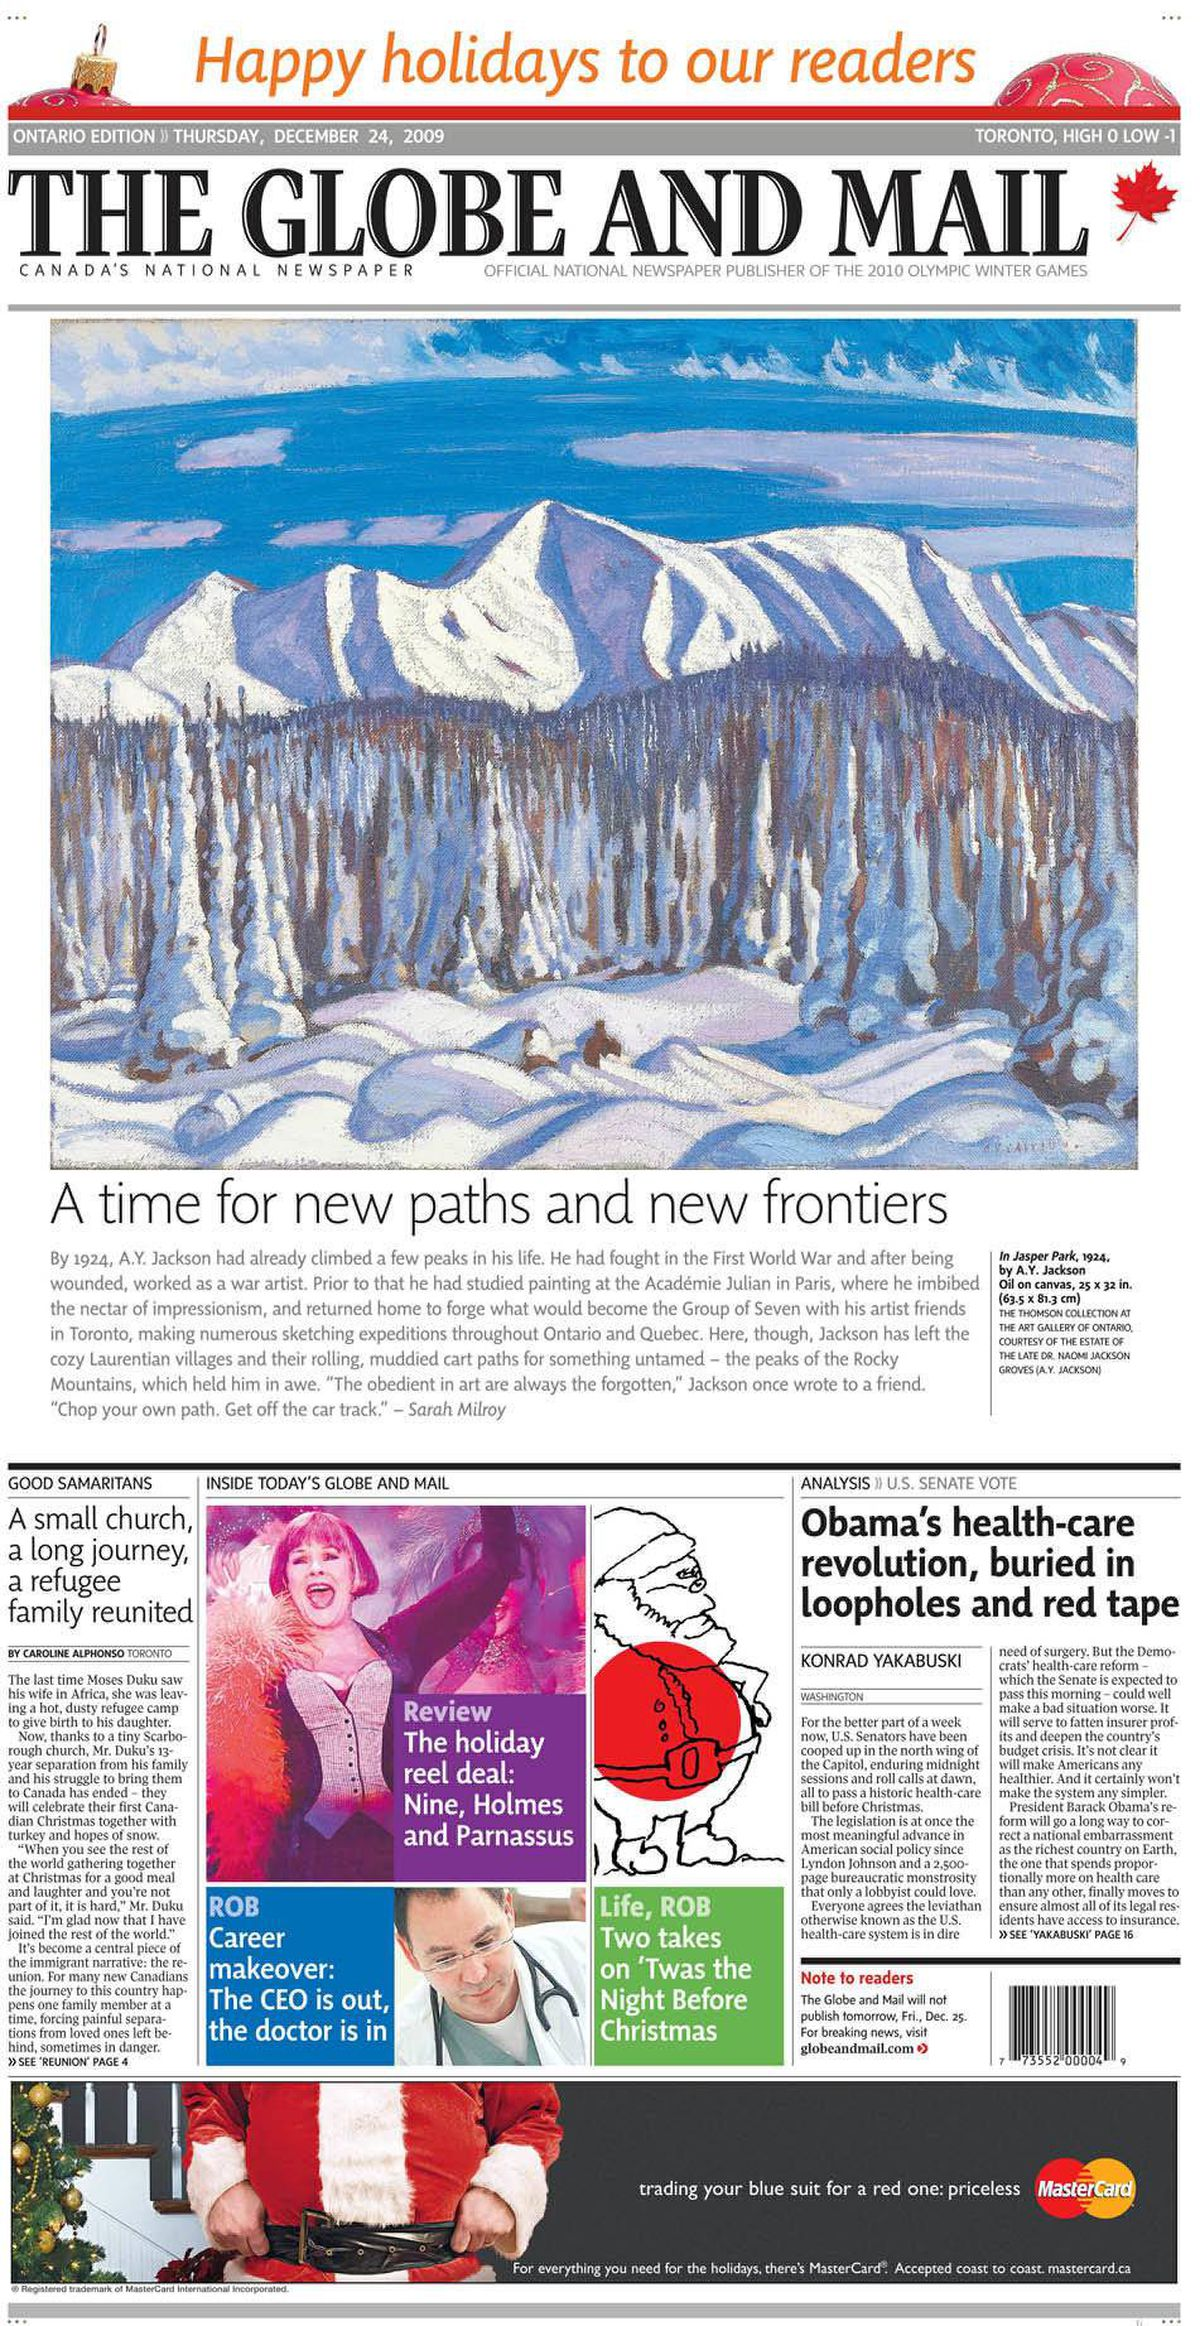 Cover of The Globe and Mail, Dec. 24, 2009